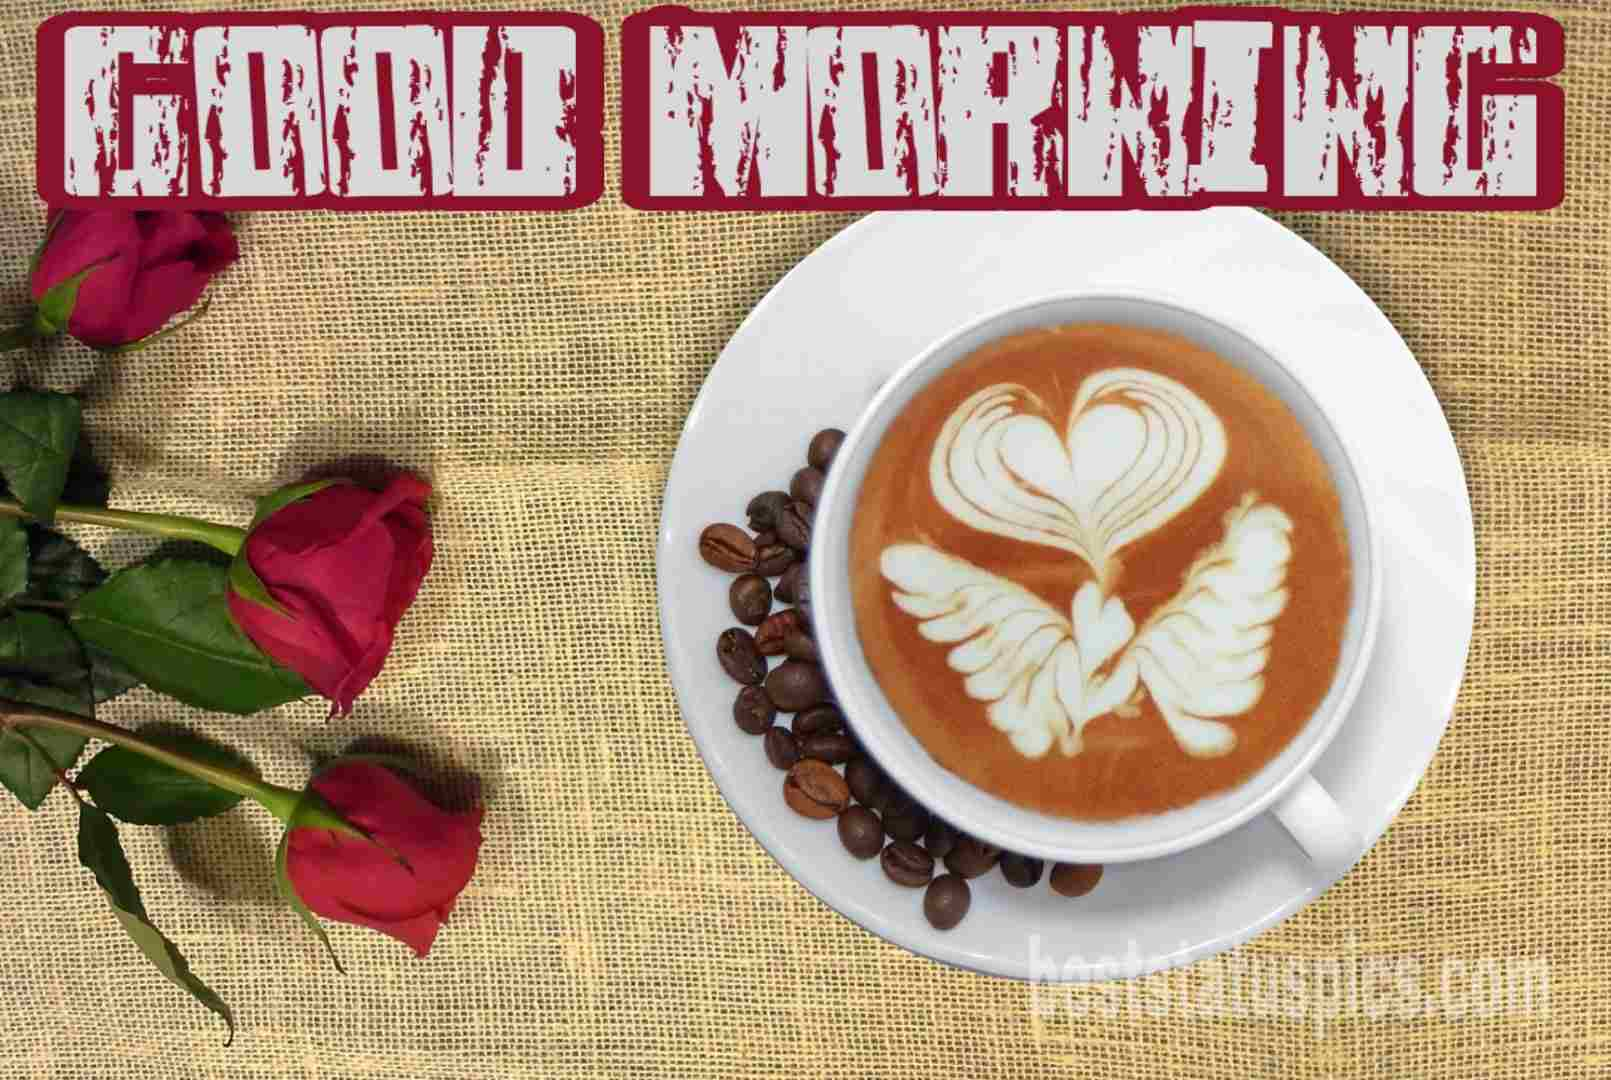 Good morning coffee cup with red rose flowers